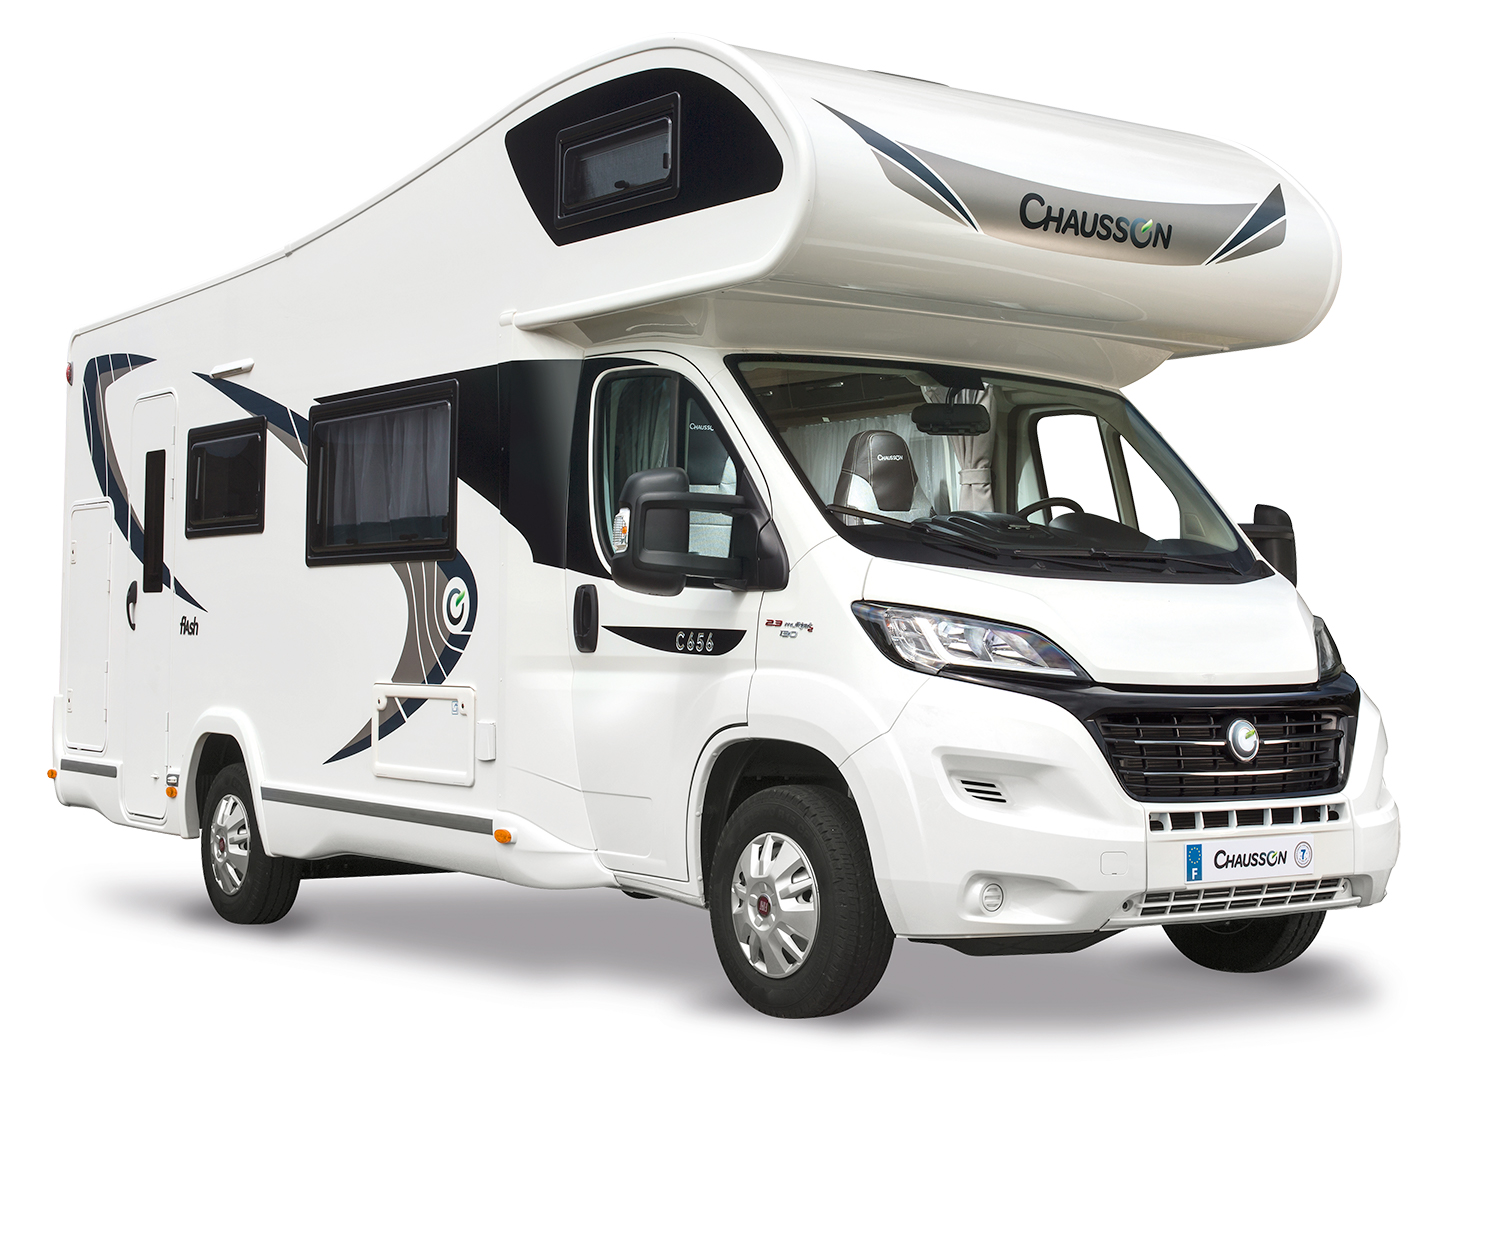 Chausson - Flash C656 - 0